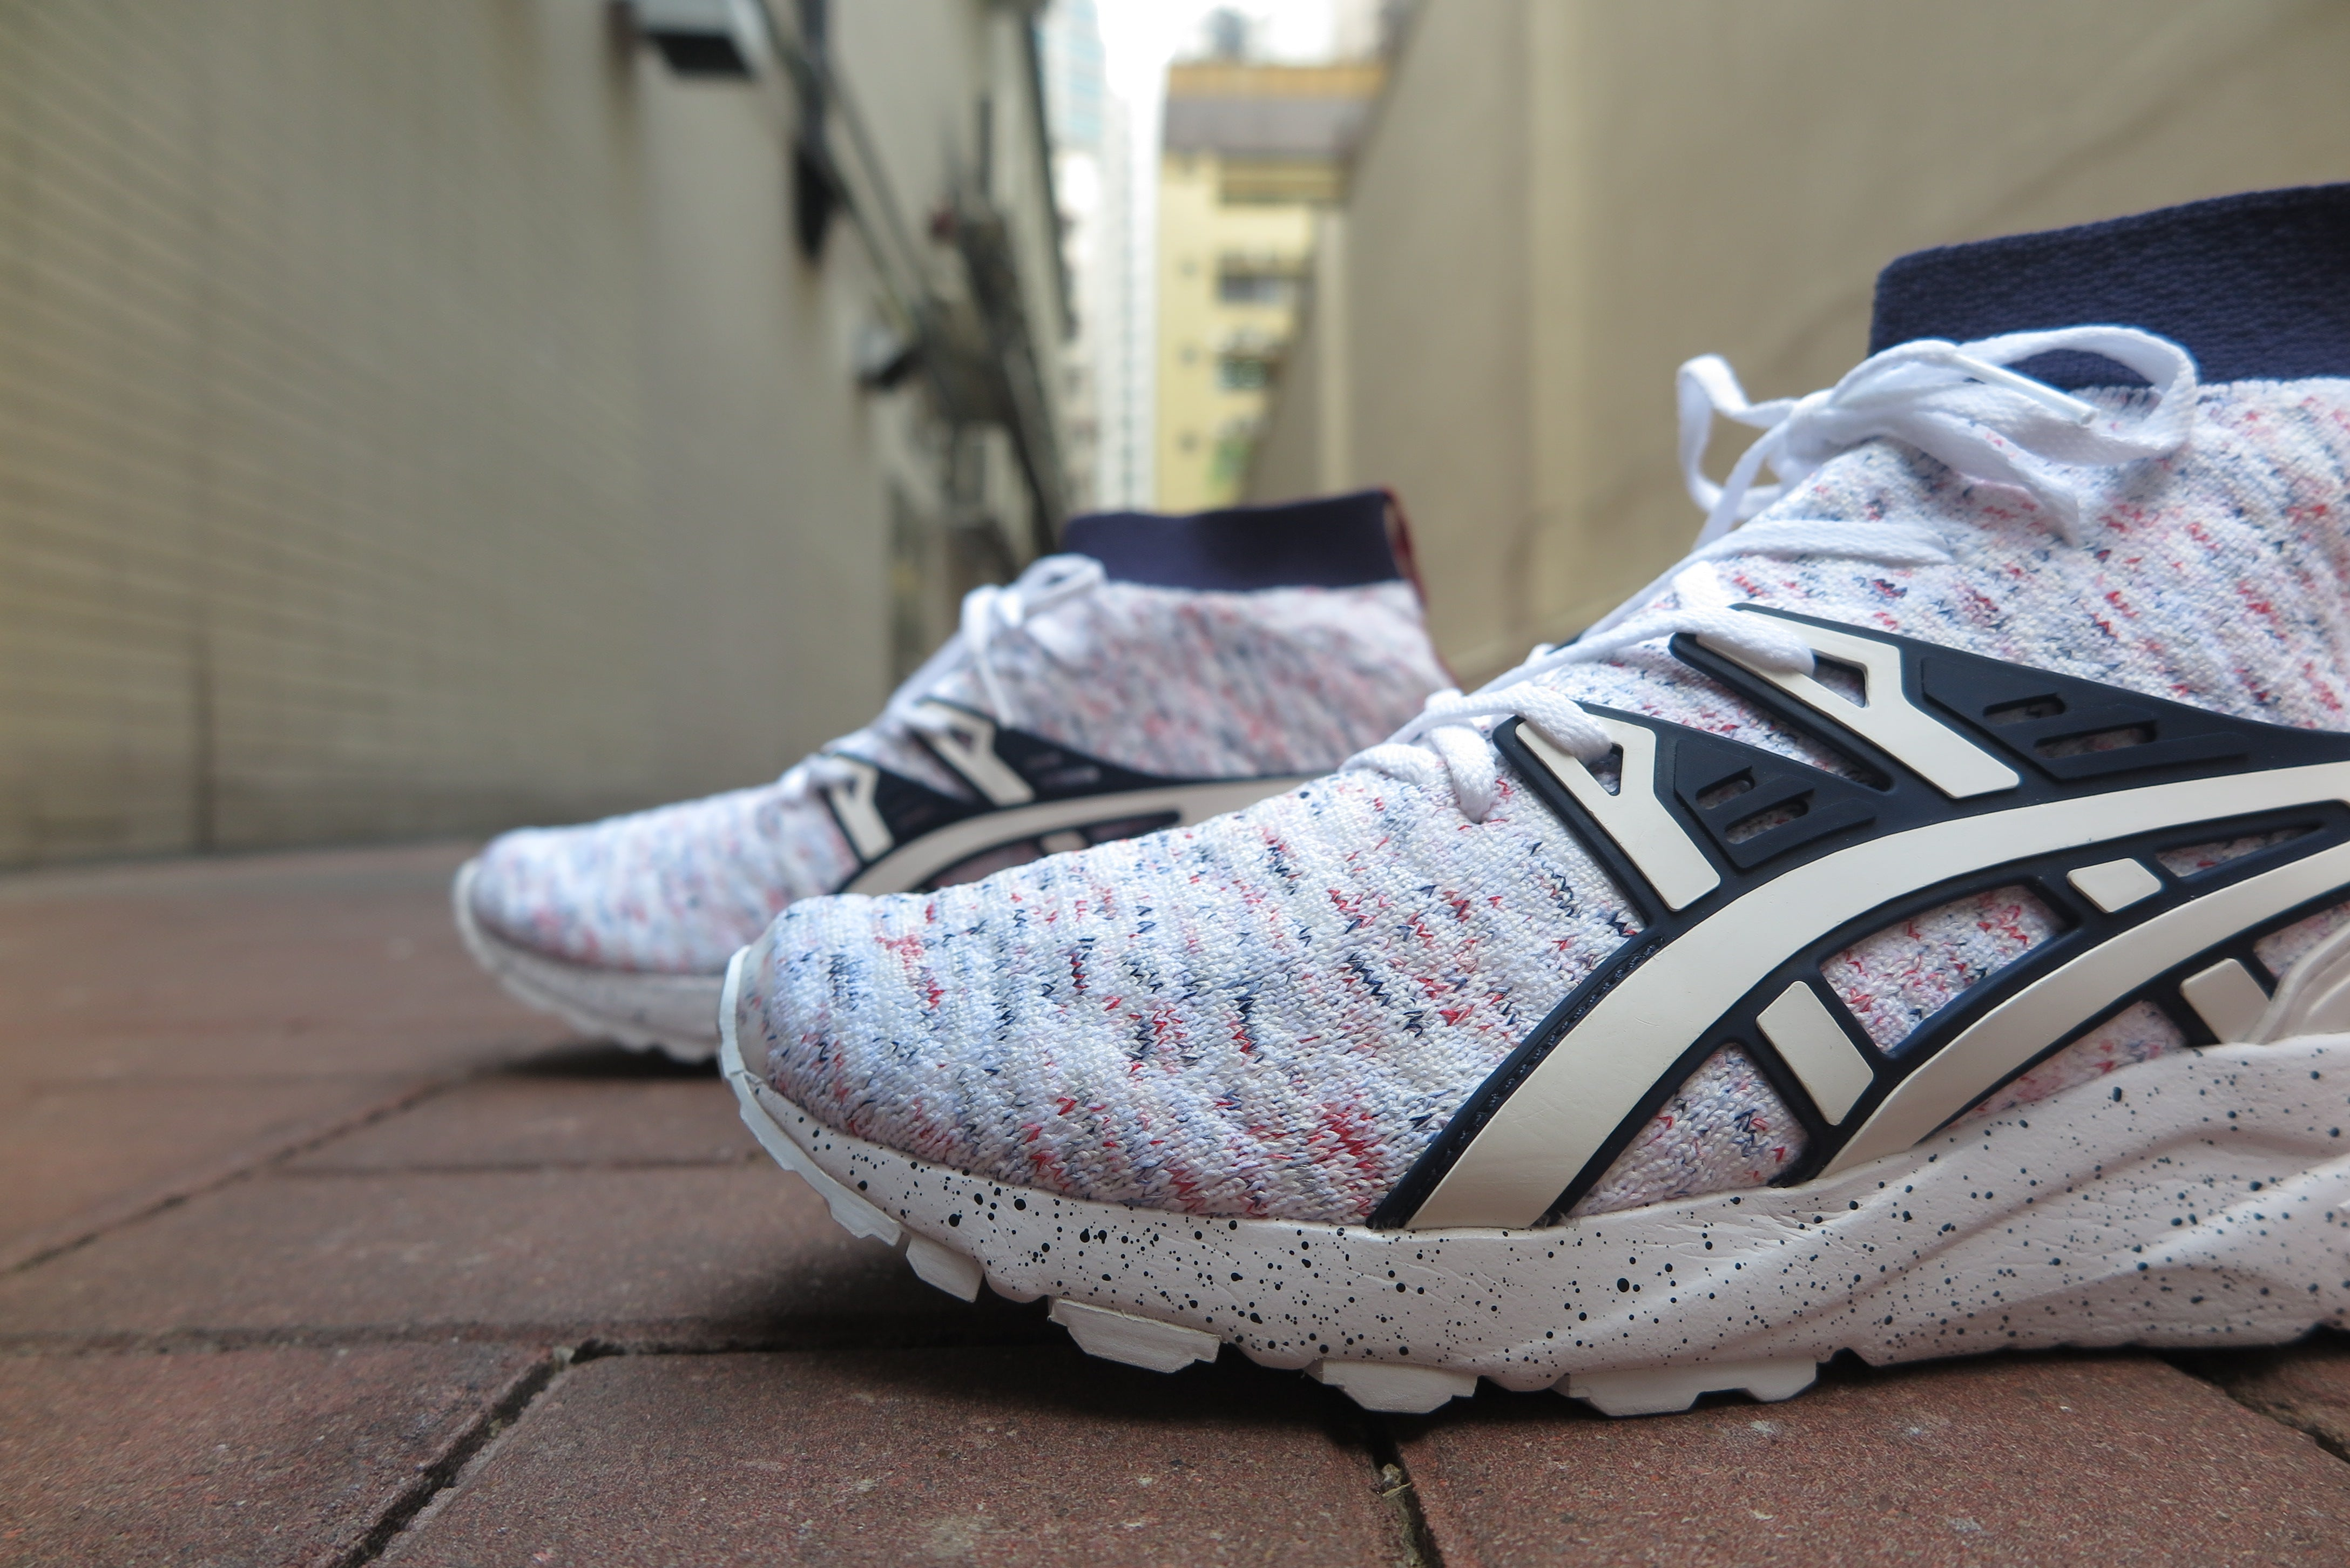 Asics Gel Kayano Trainer Knit MT - White/White #HN707-0101-Preorder Item-Navy Selected Shop